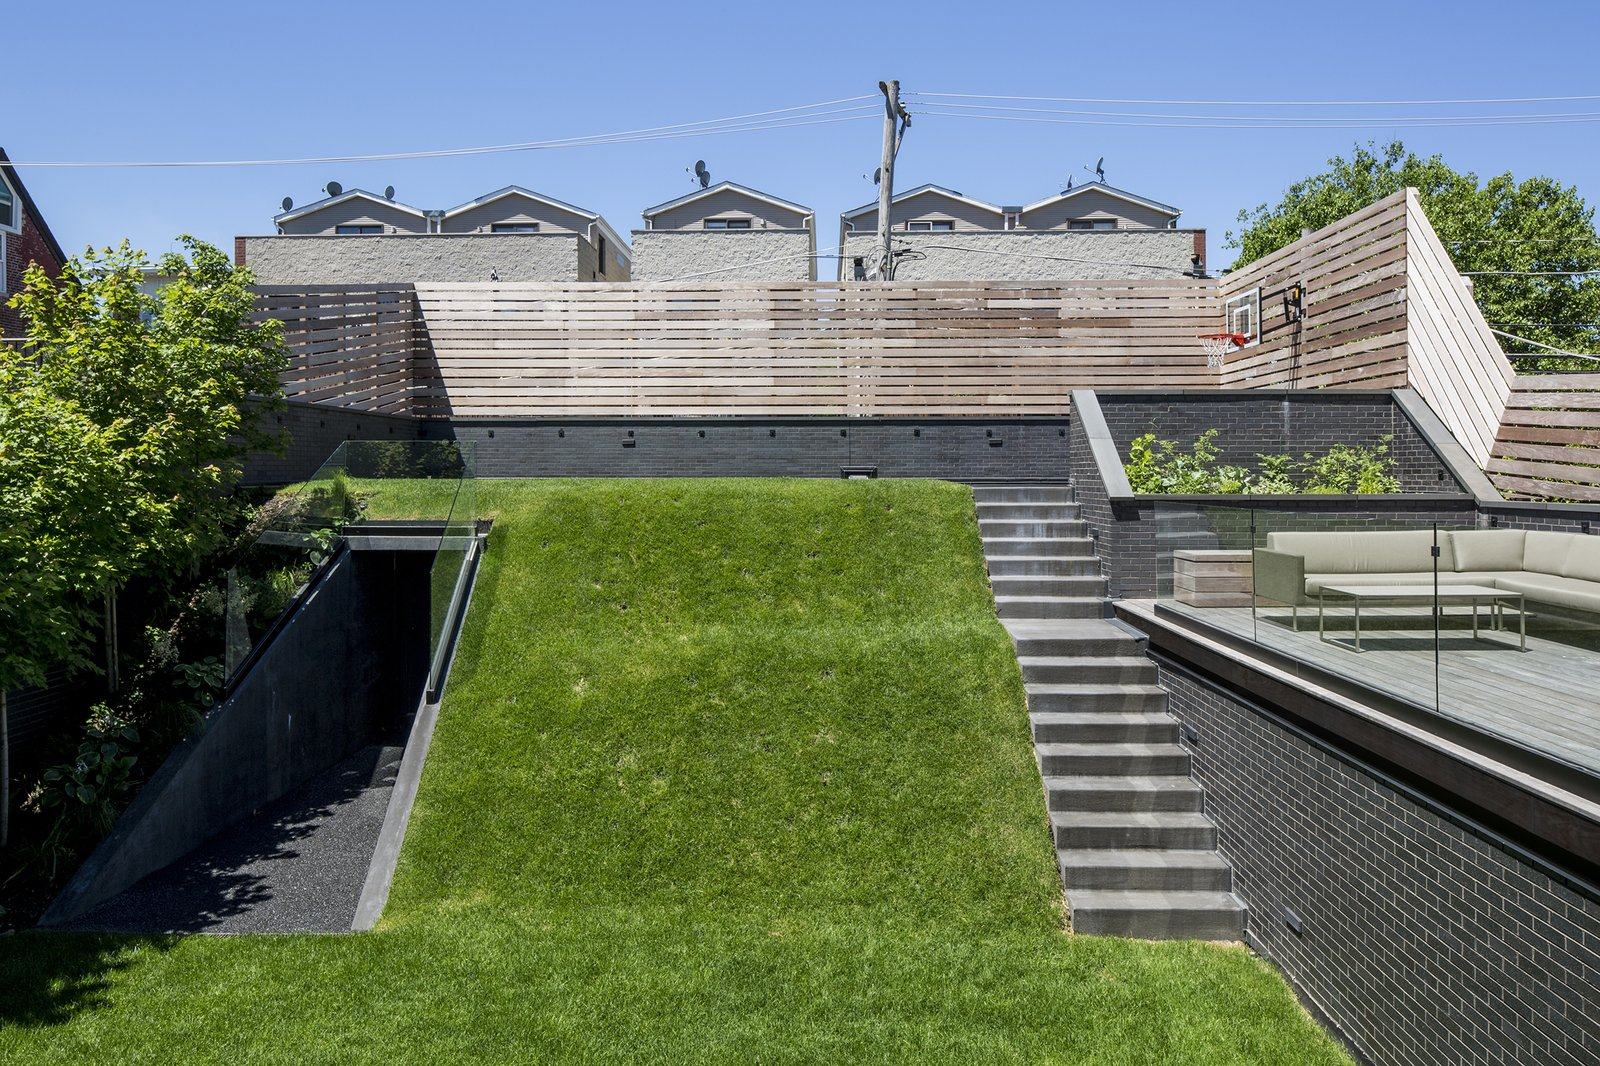 """Outdoor, Grass, Trees, Back Yard, Horizontal Fences, Wall, Wood Patio, Porch, Deck, Wood Fences, Wall, and Slope Play surface and """"hill"""" covers garage  Mohawk House by UrbanLab"""